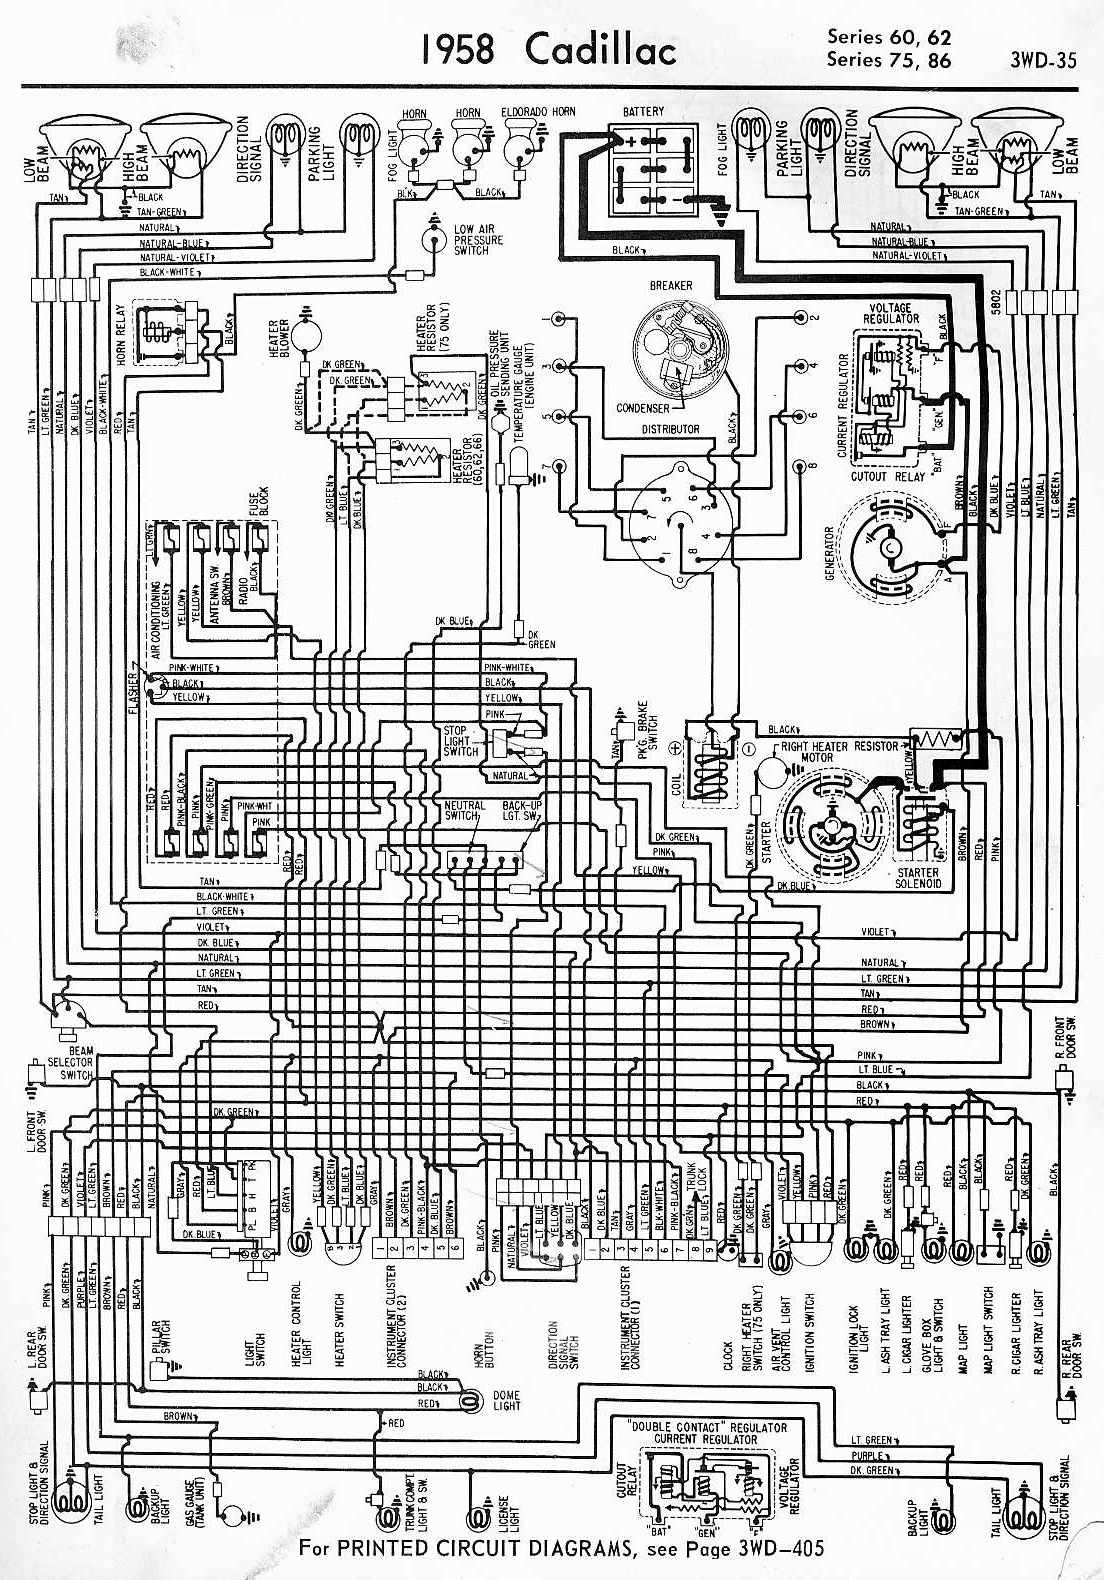 small resolution of wiring diagram for a 1955 cadillac simple wiring post rh 20 asiagourmet igb de 1956 cadillac 1969 cadillac